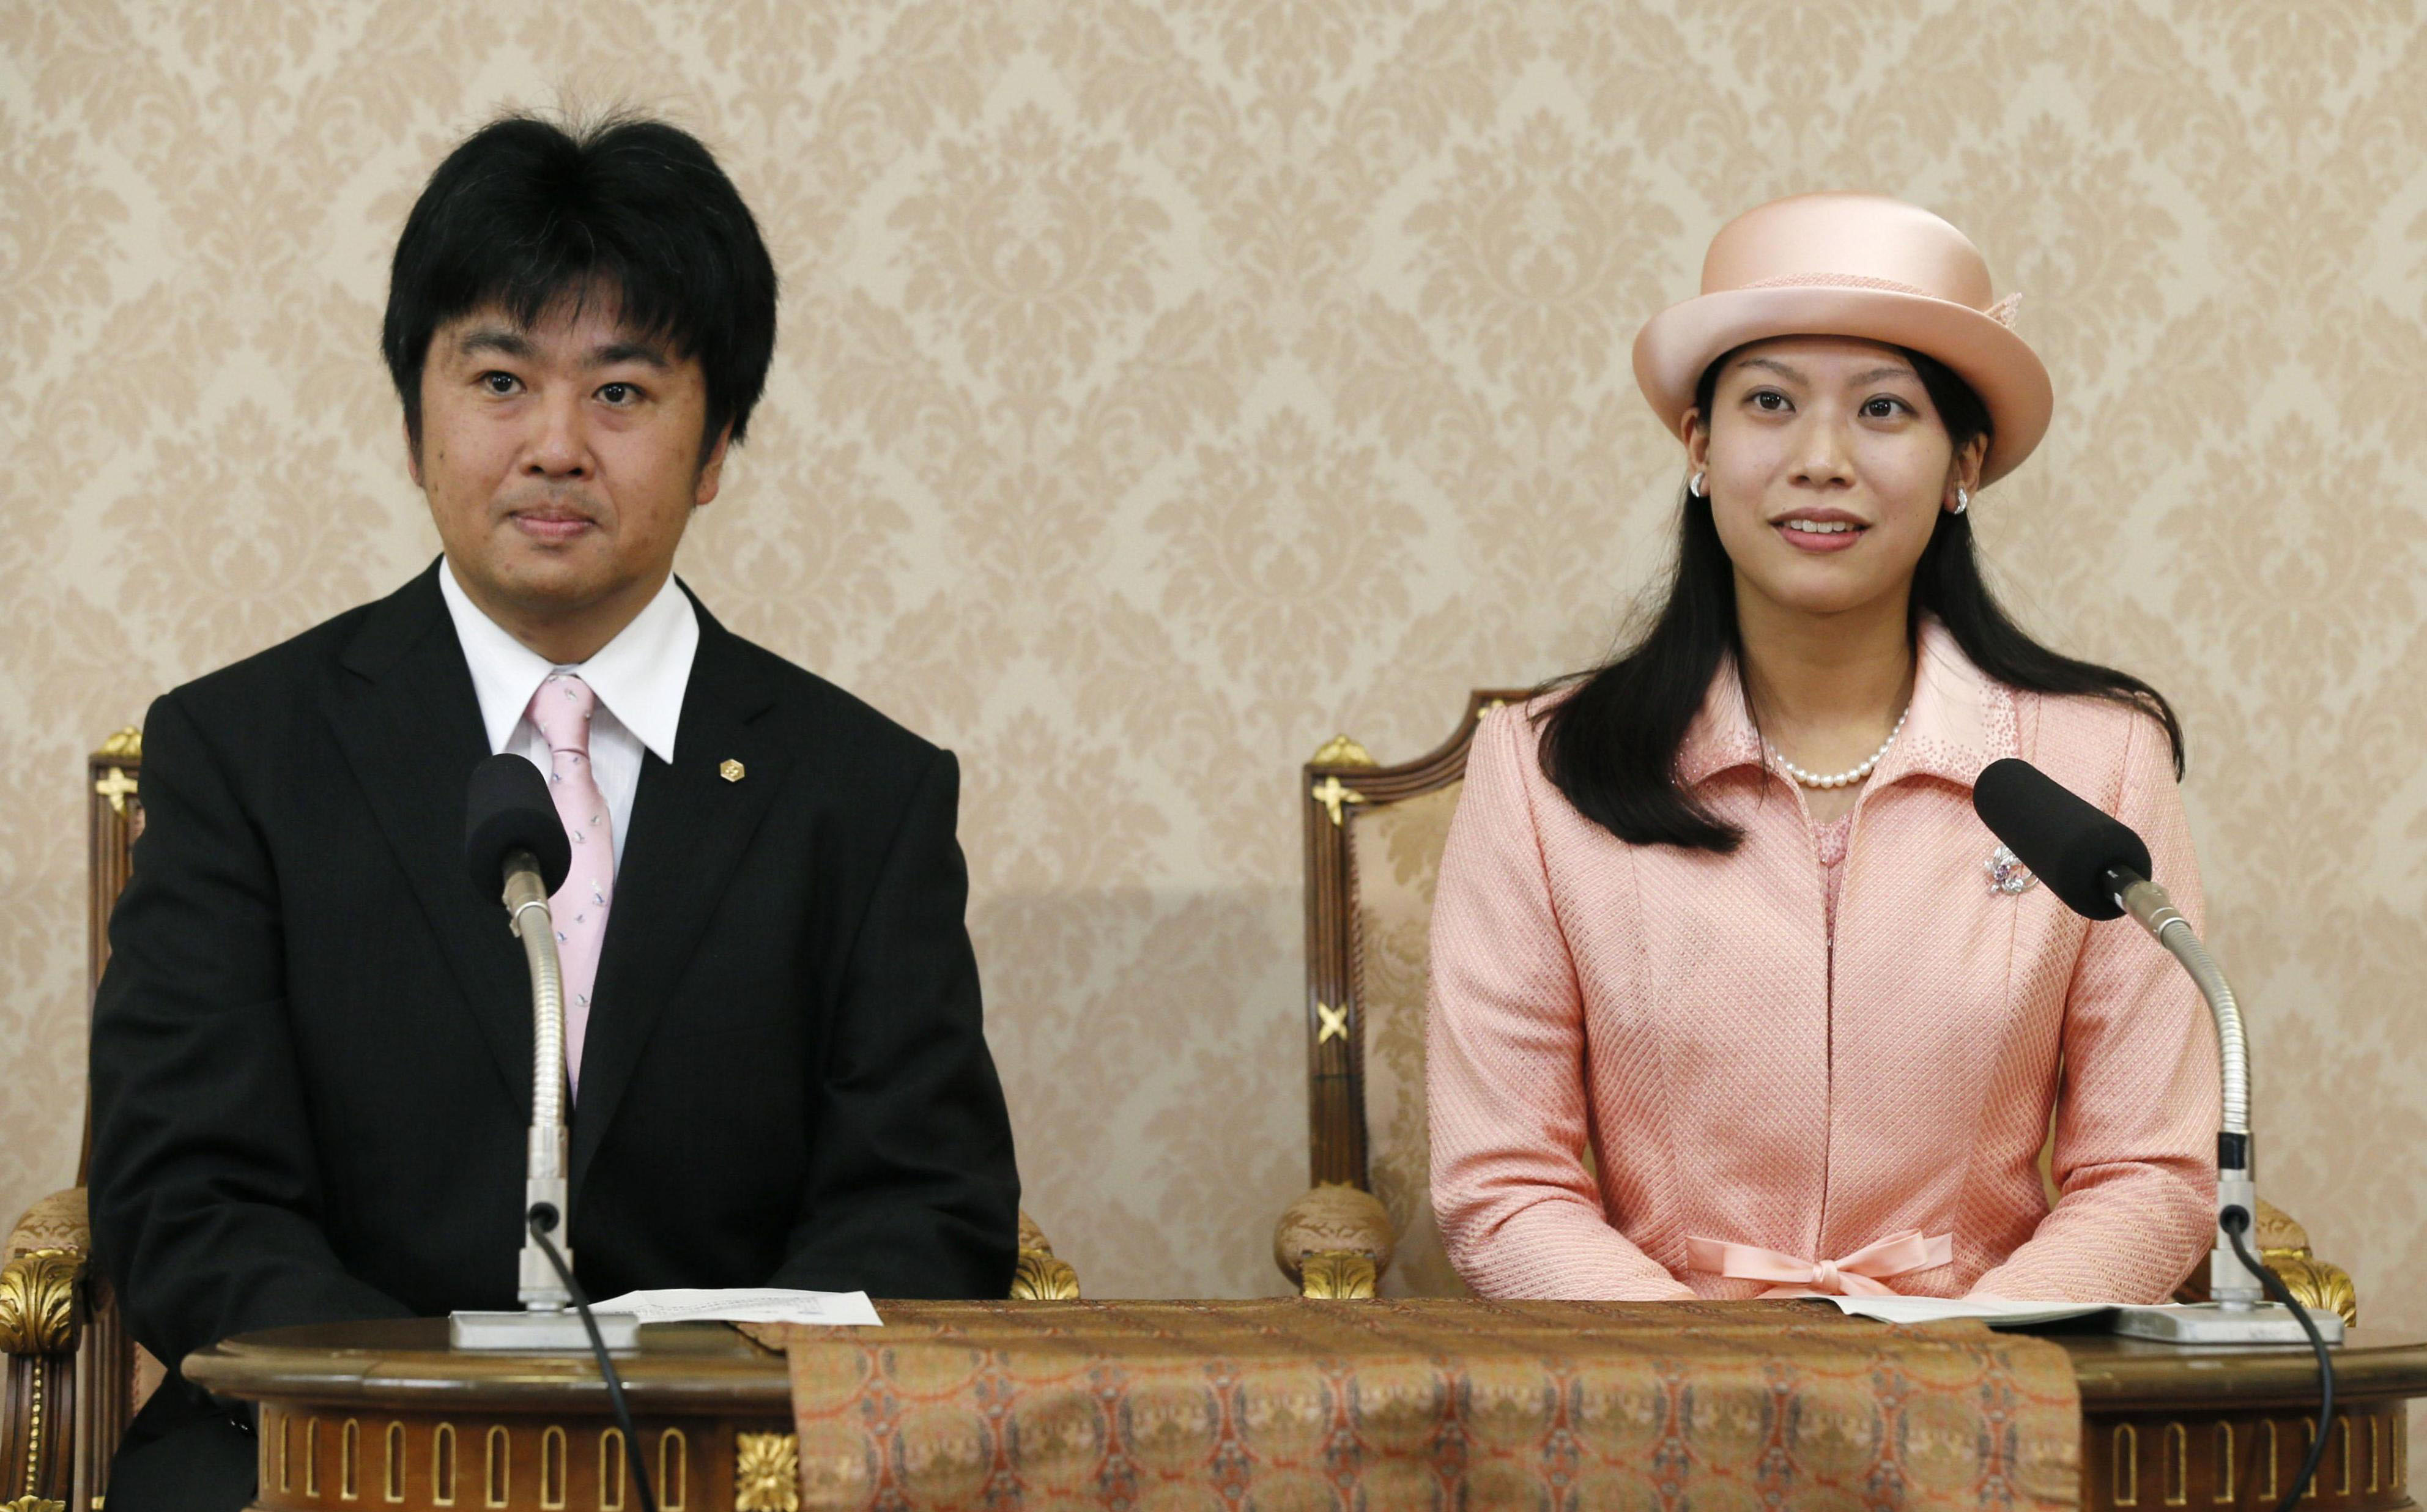 Princess Noriko, 25, and Kunimaro Senge, 40, speak to the media during a news conference at the Imperial Palace in Tokyo on Tuesday, after publicly announcing their engagement. | KYODO